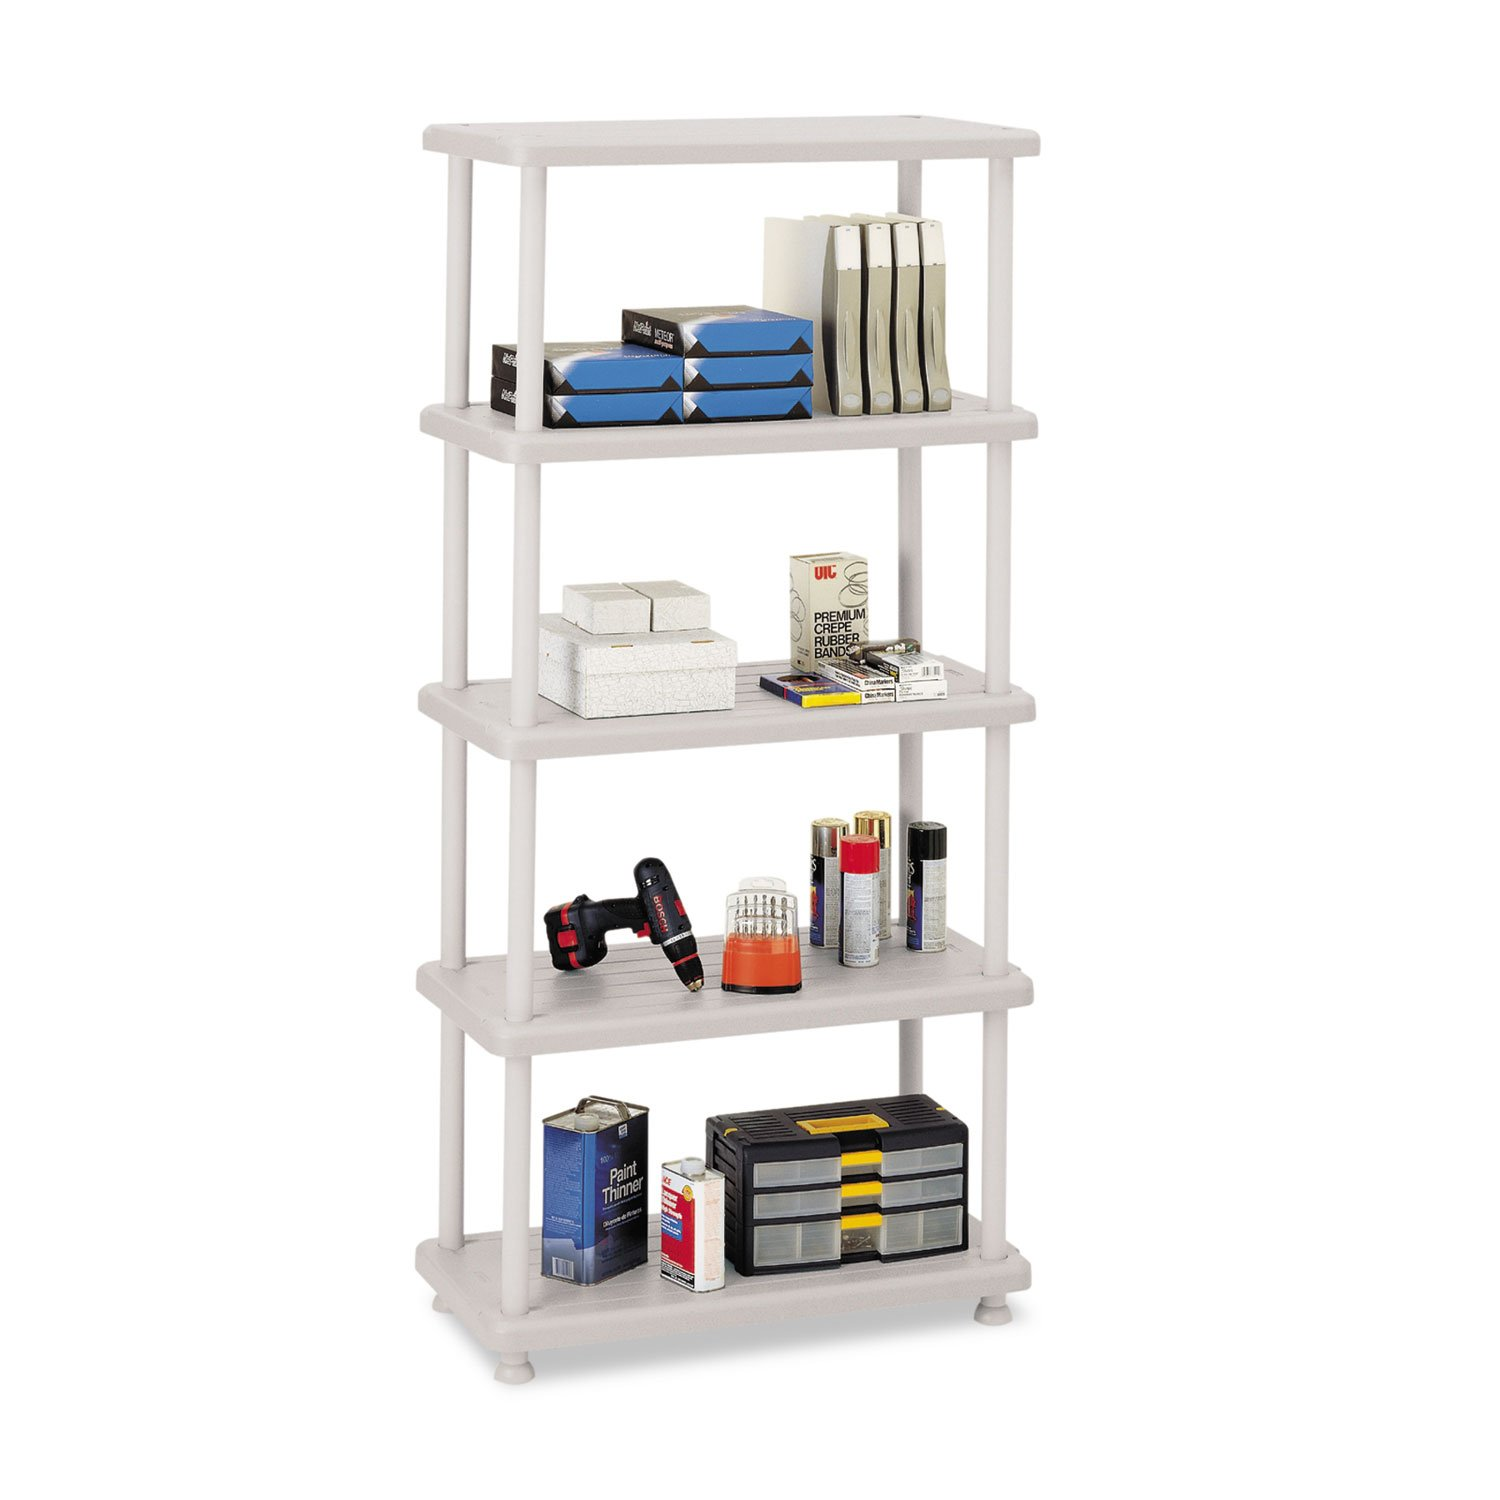 Iceberg 20853 Rough n Ready Open Storage System 5 Shelves 36 x 18 x 74 Platinum